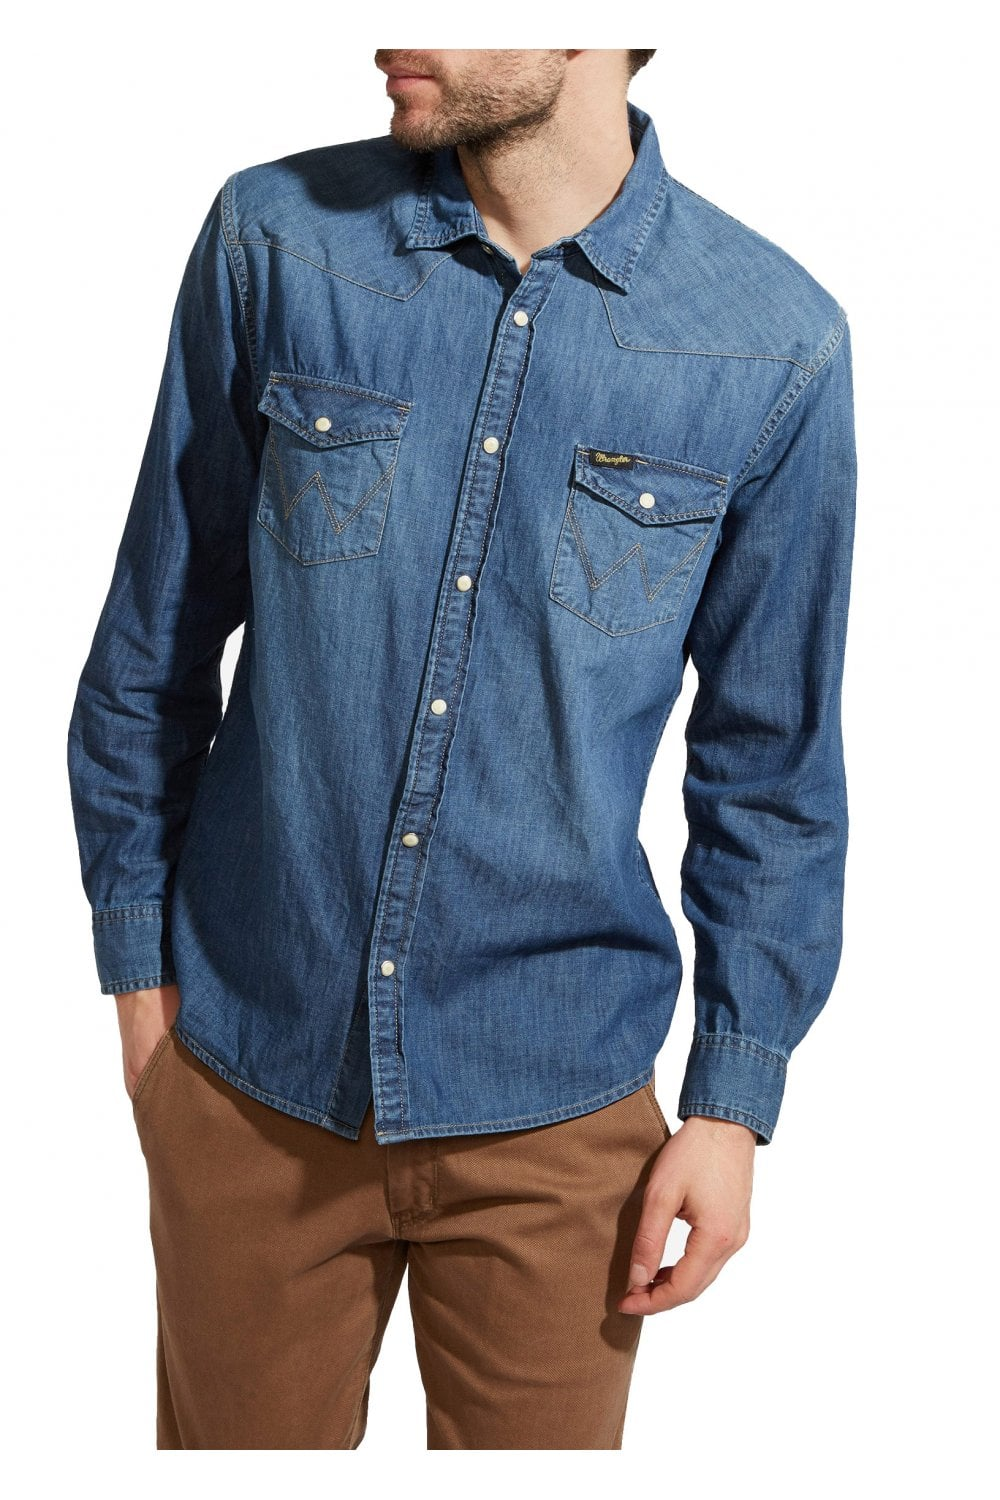 49d902a1 Wrangler Western Denim Shirt - Mid Indigo - Shirts from Potters of ...